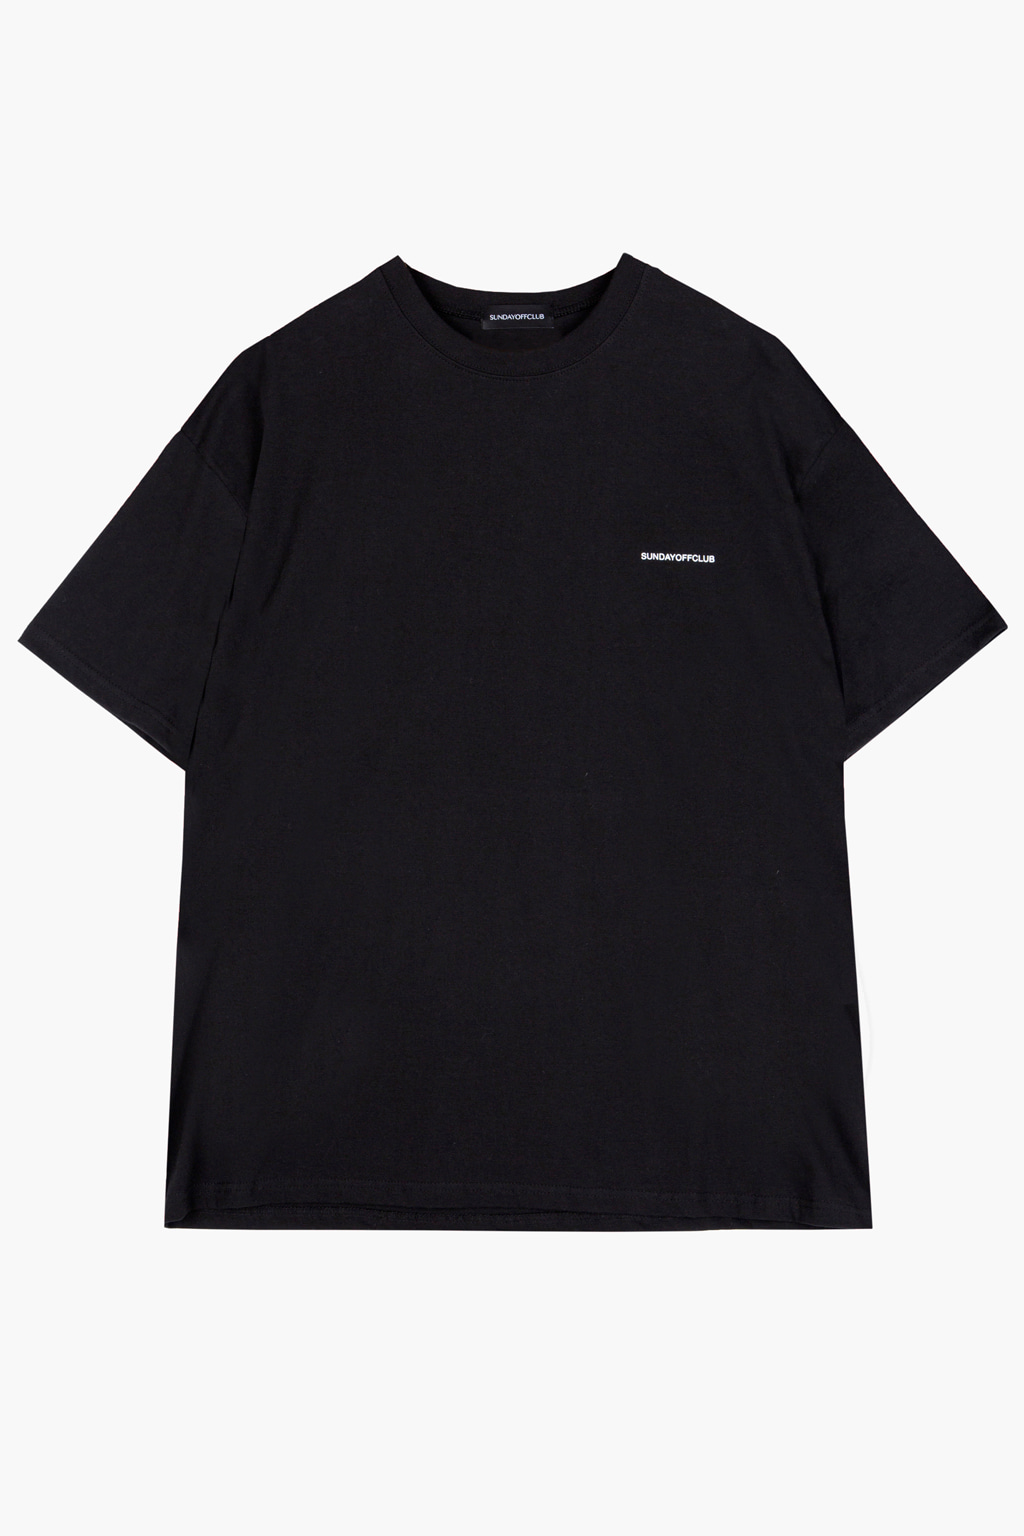 OG Logo & Slogan T-shirt - black